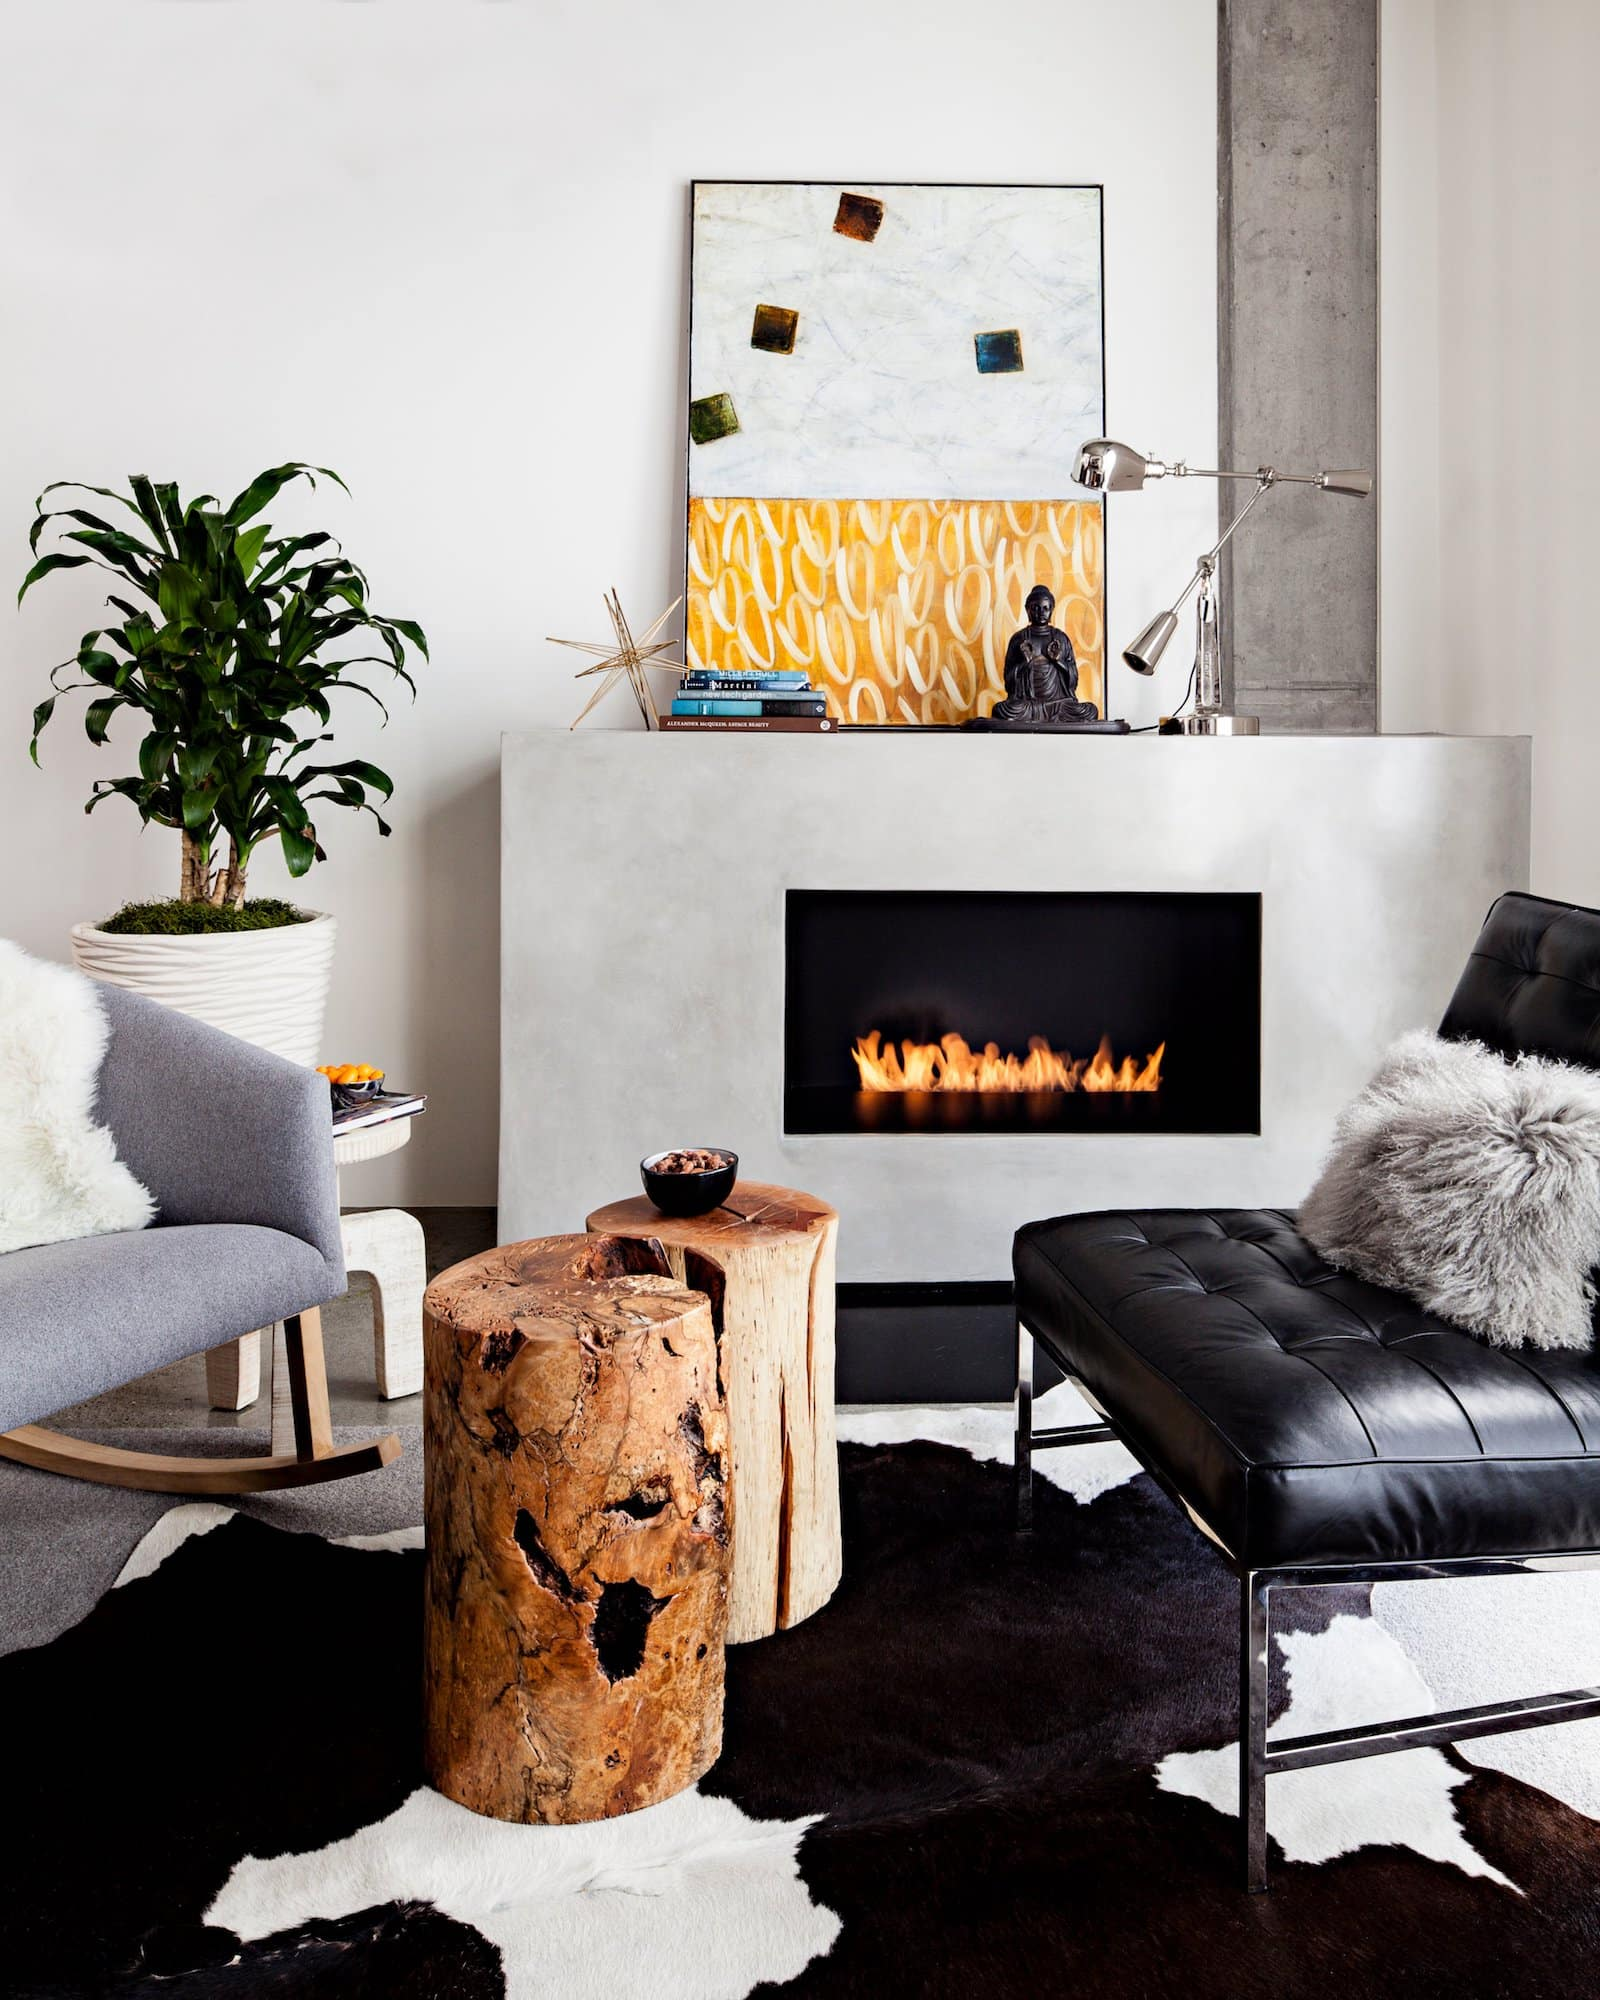 JHL Design added a warm fireplace to this loft in Portland, Oregon.